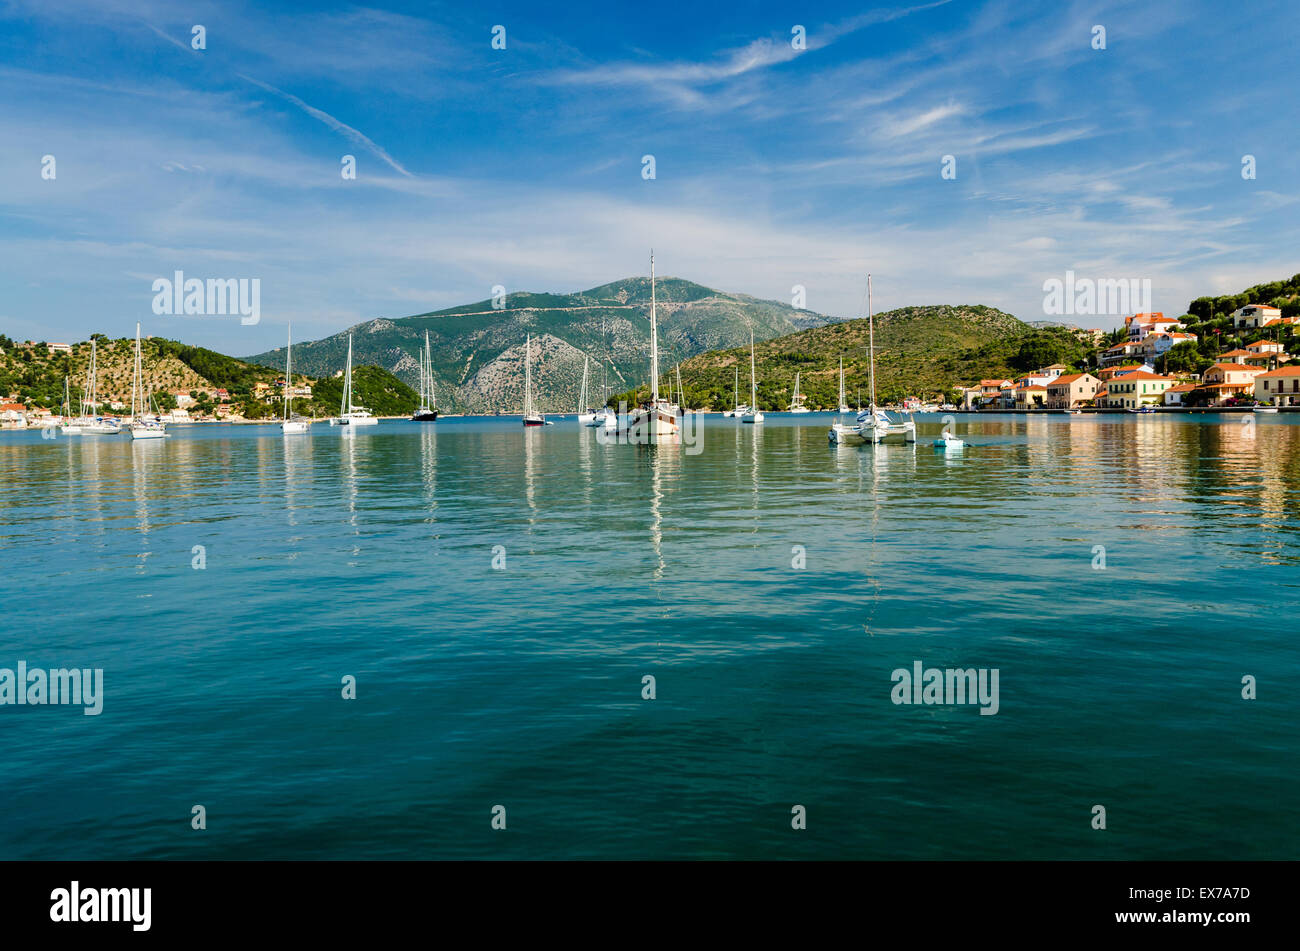 Boats and yachts moored up in Vathy harbour Ithaca - Stock Image